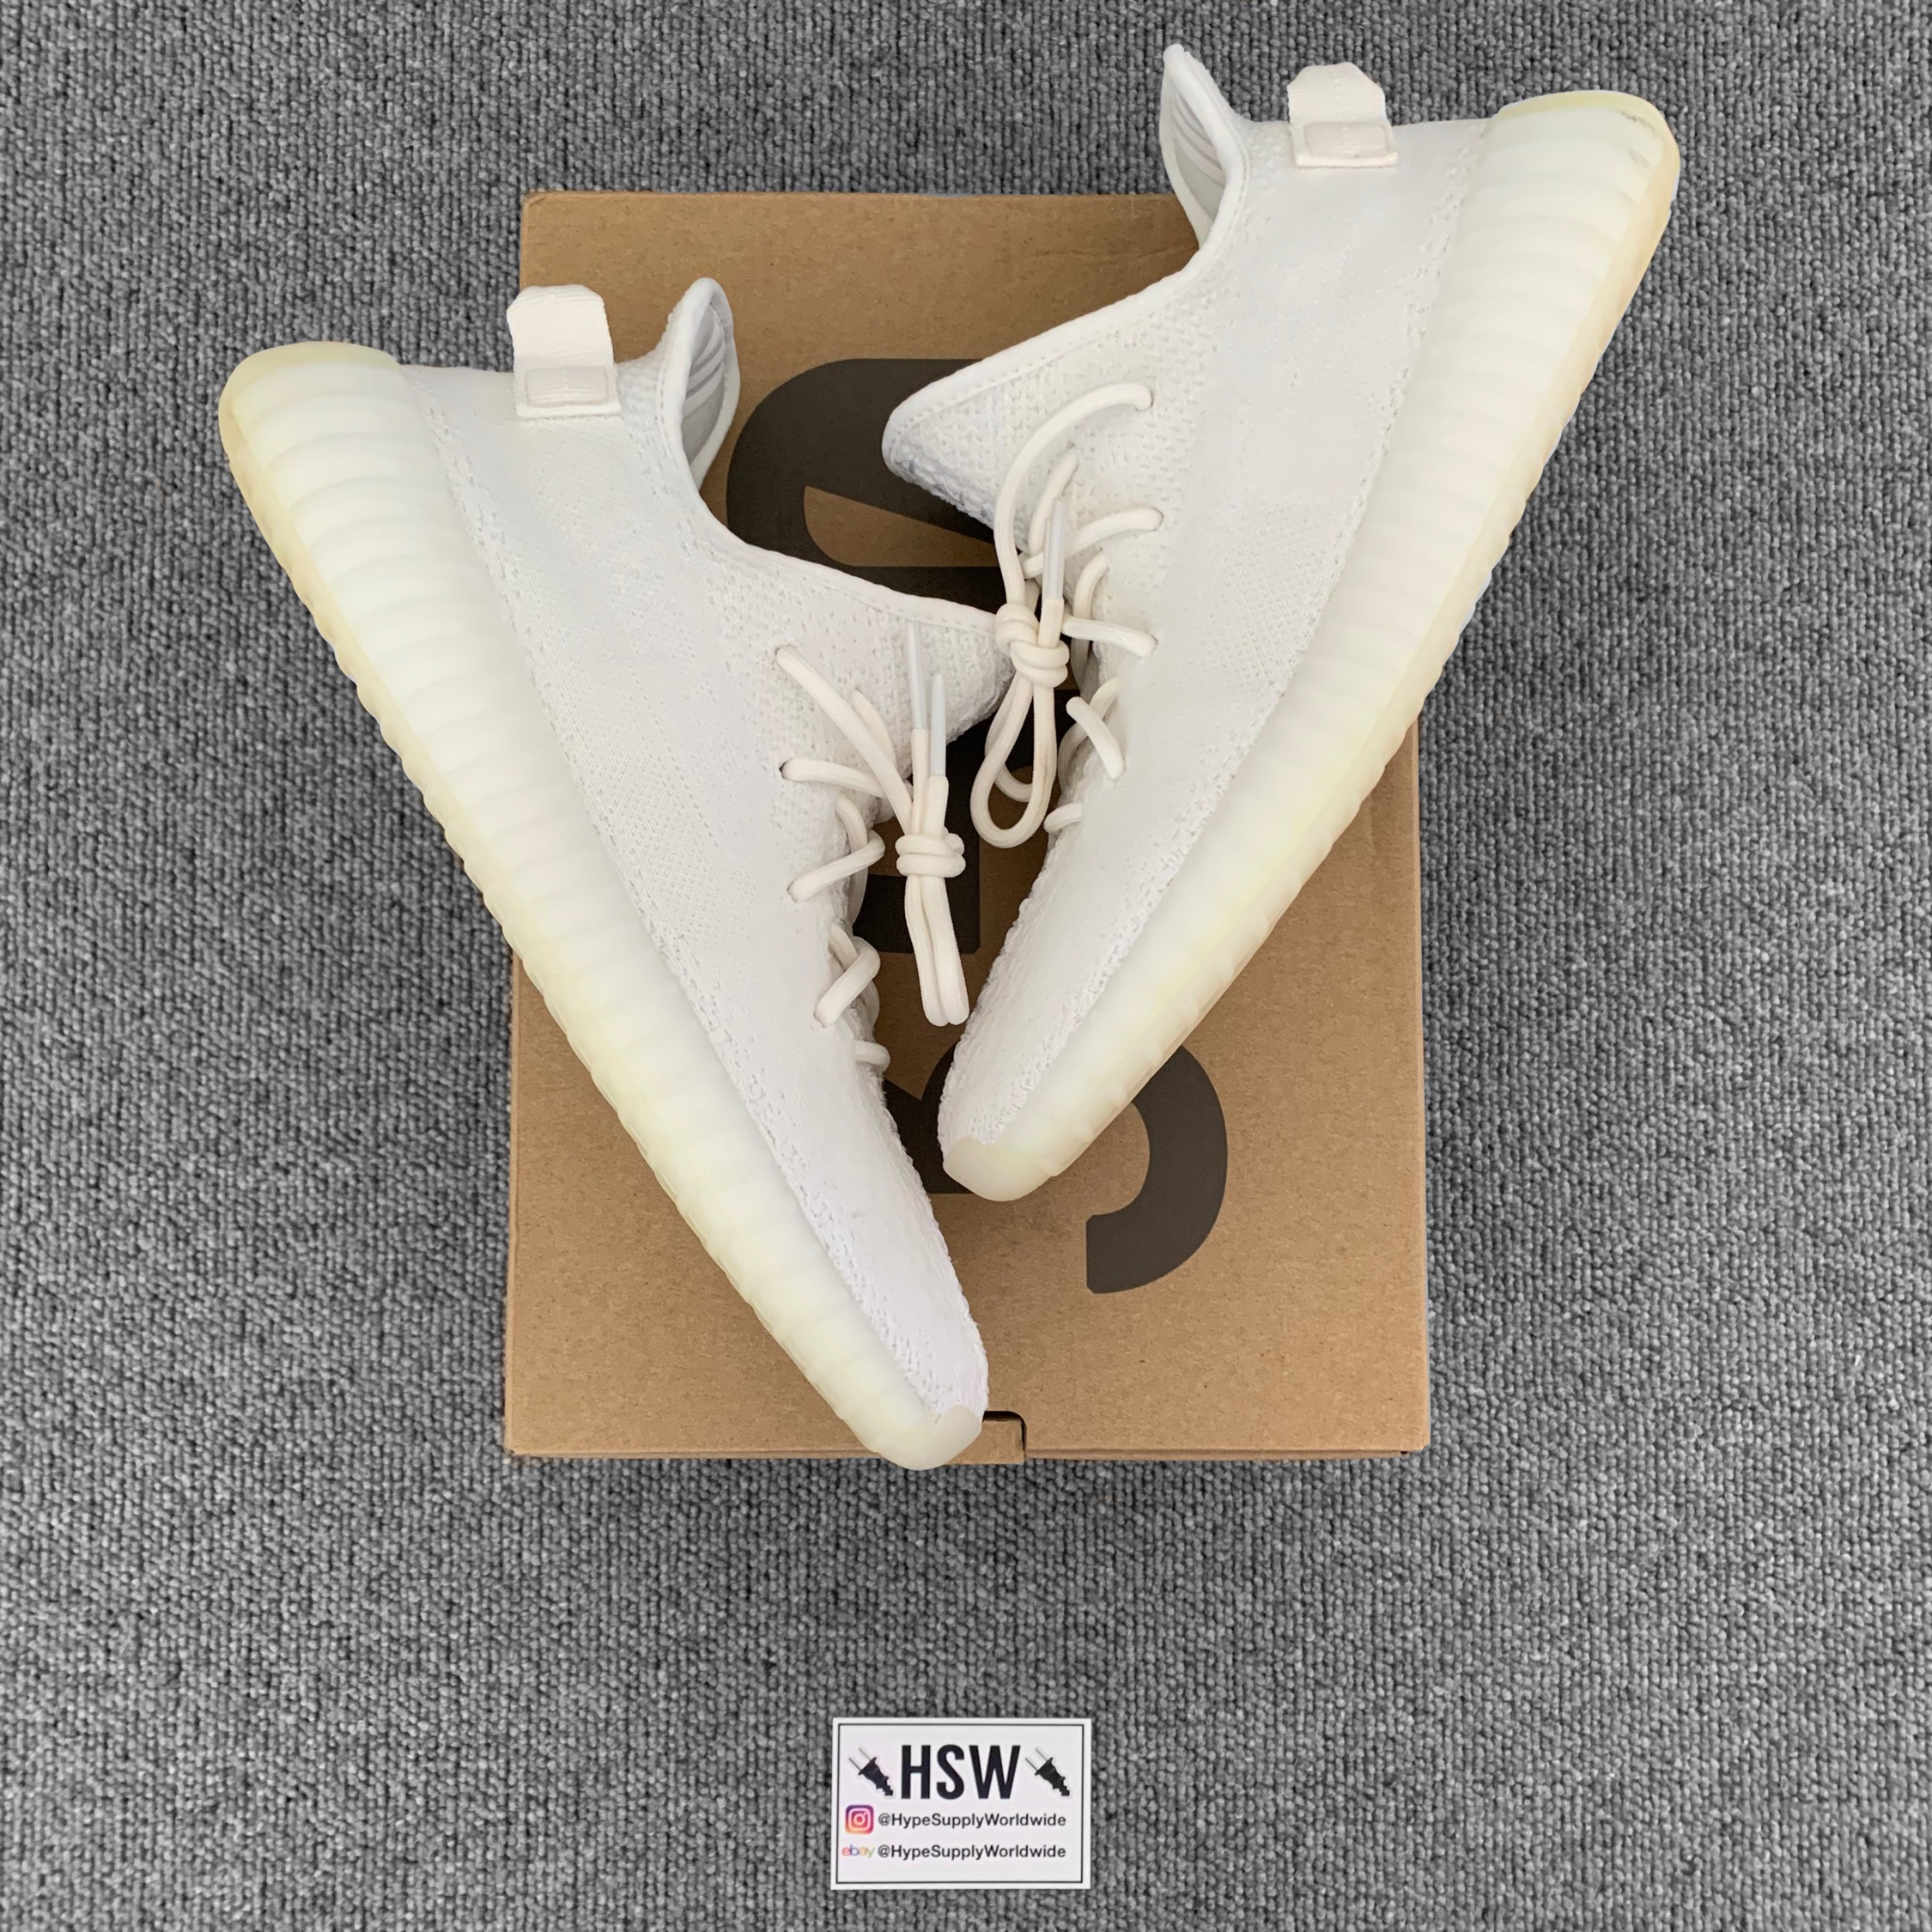 new style 6df4b d488a Adidas Yeezy Boost 350 V2 Cream White Uk 9.5